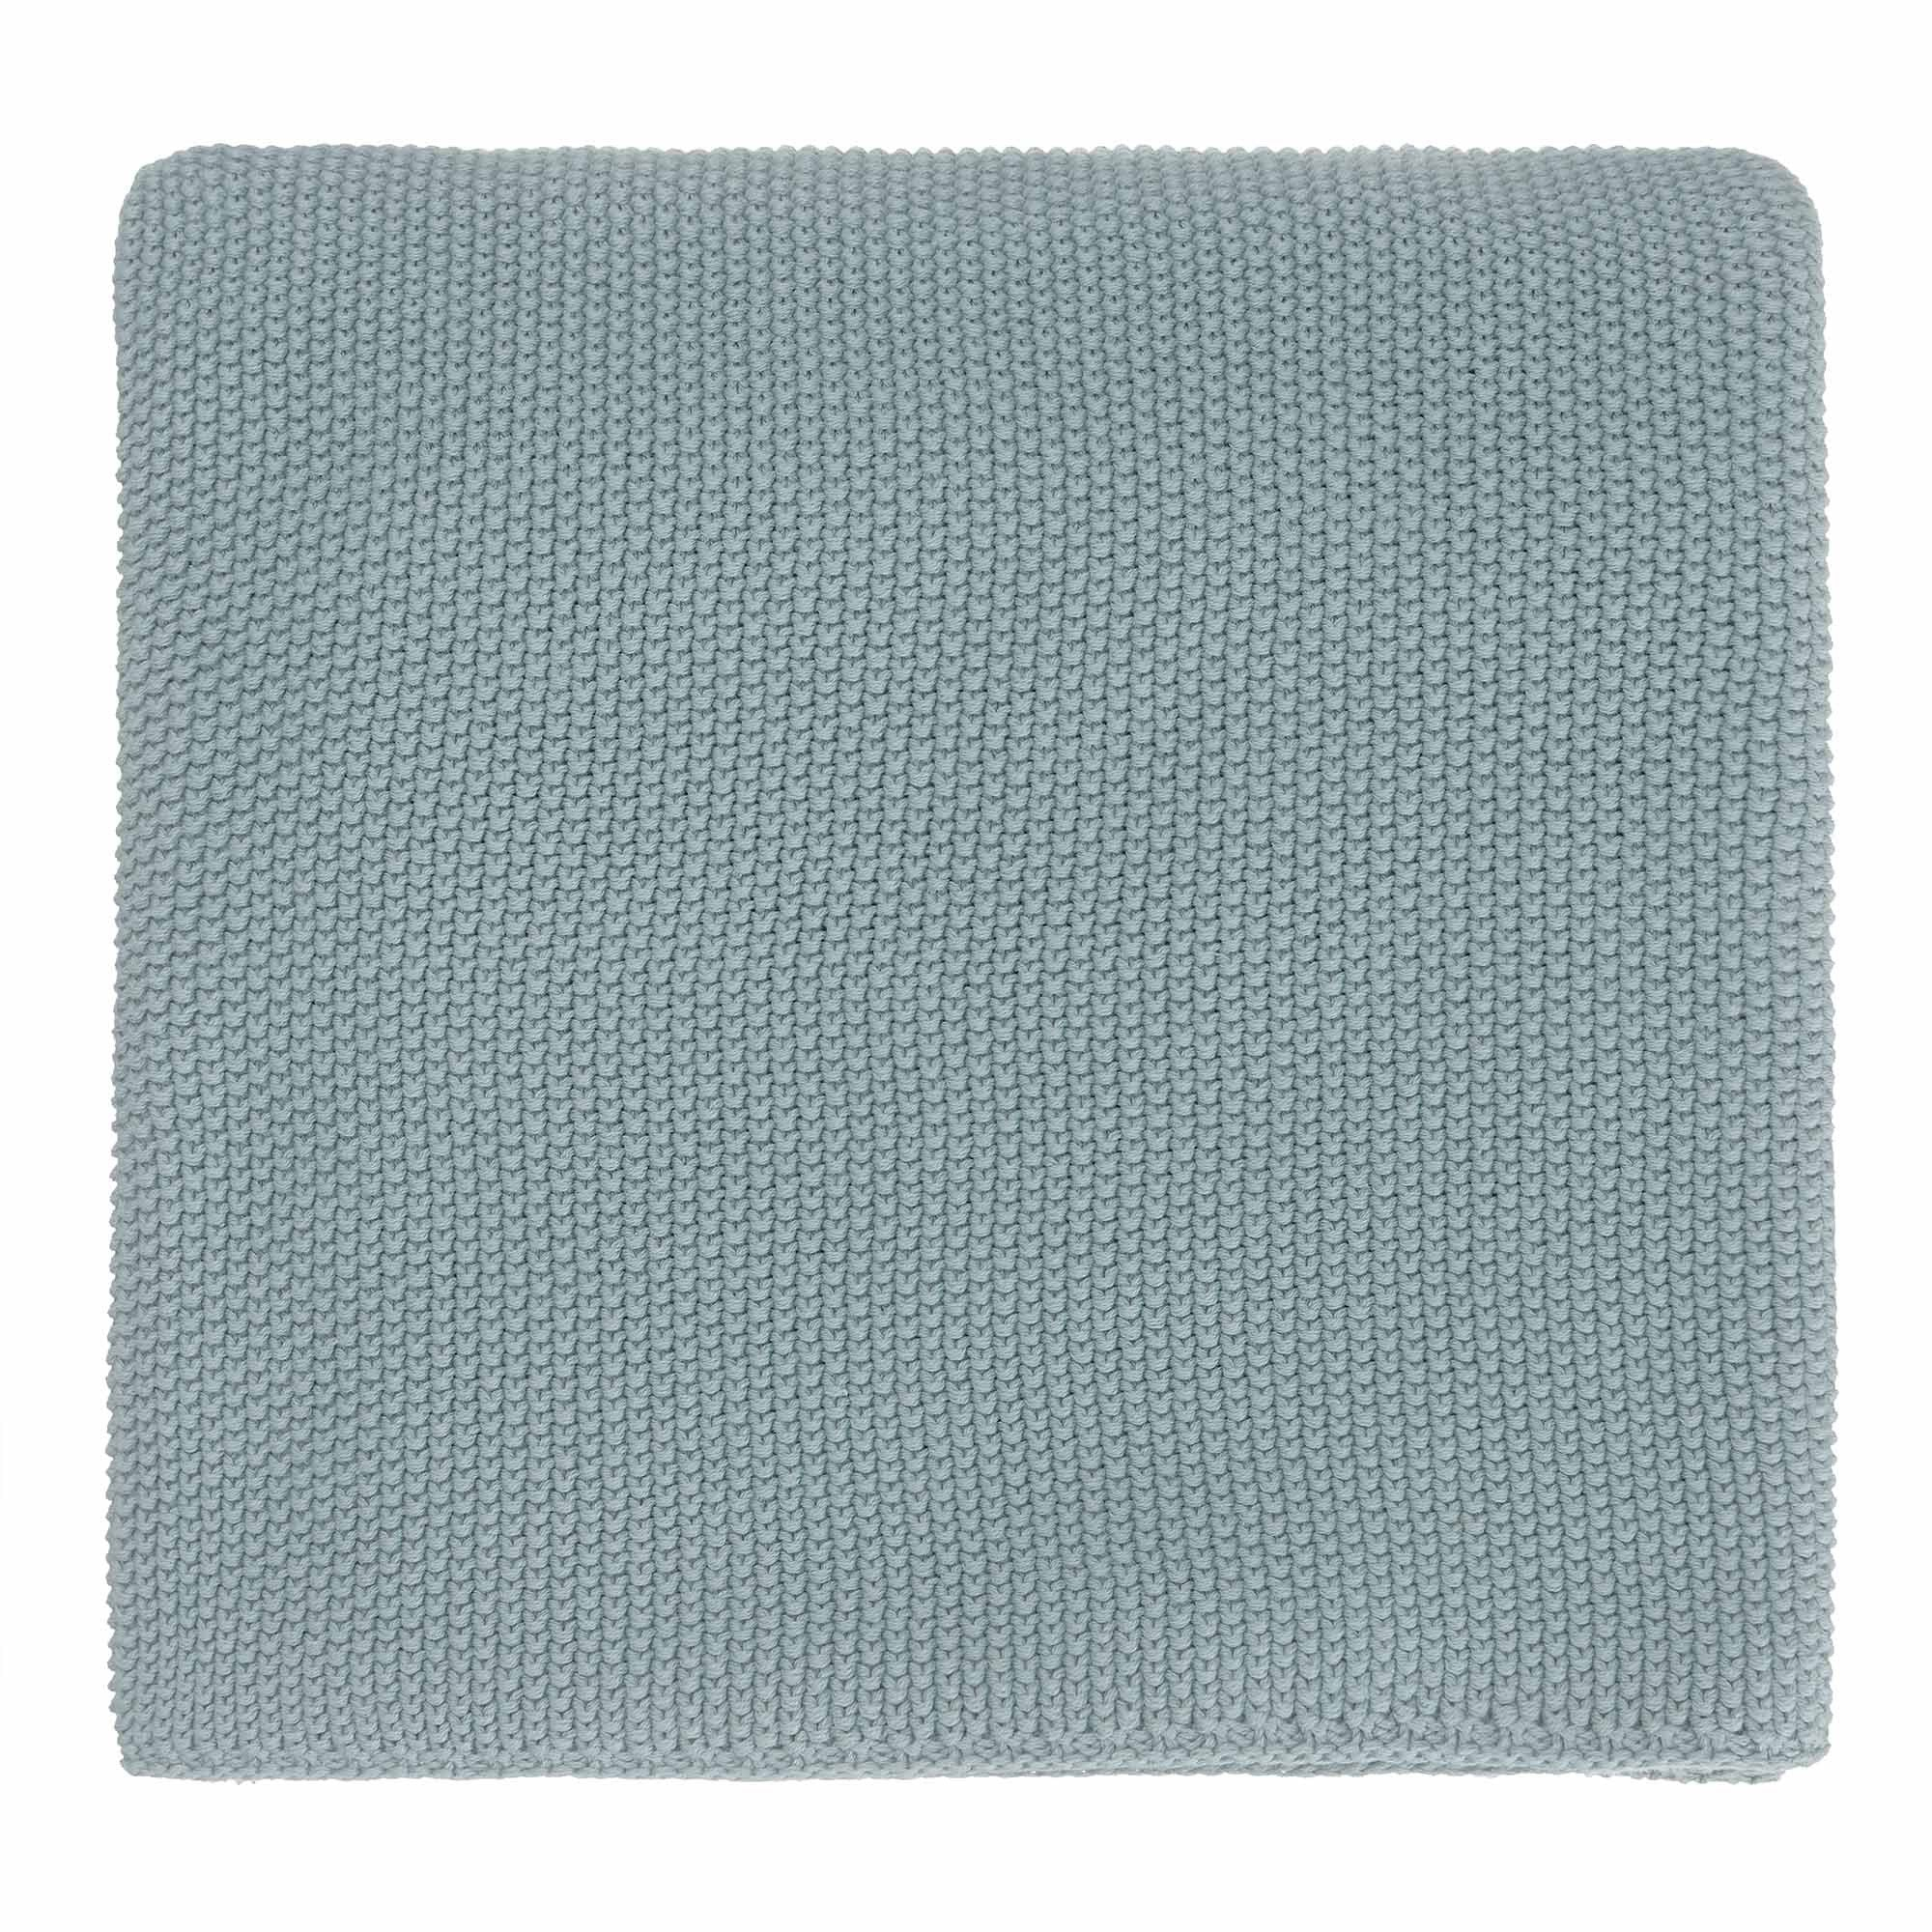 Antua blanket, green grey, 100% cotton